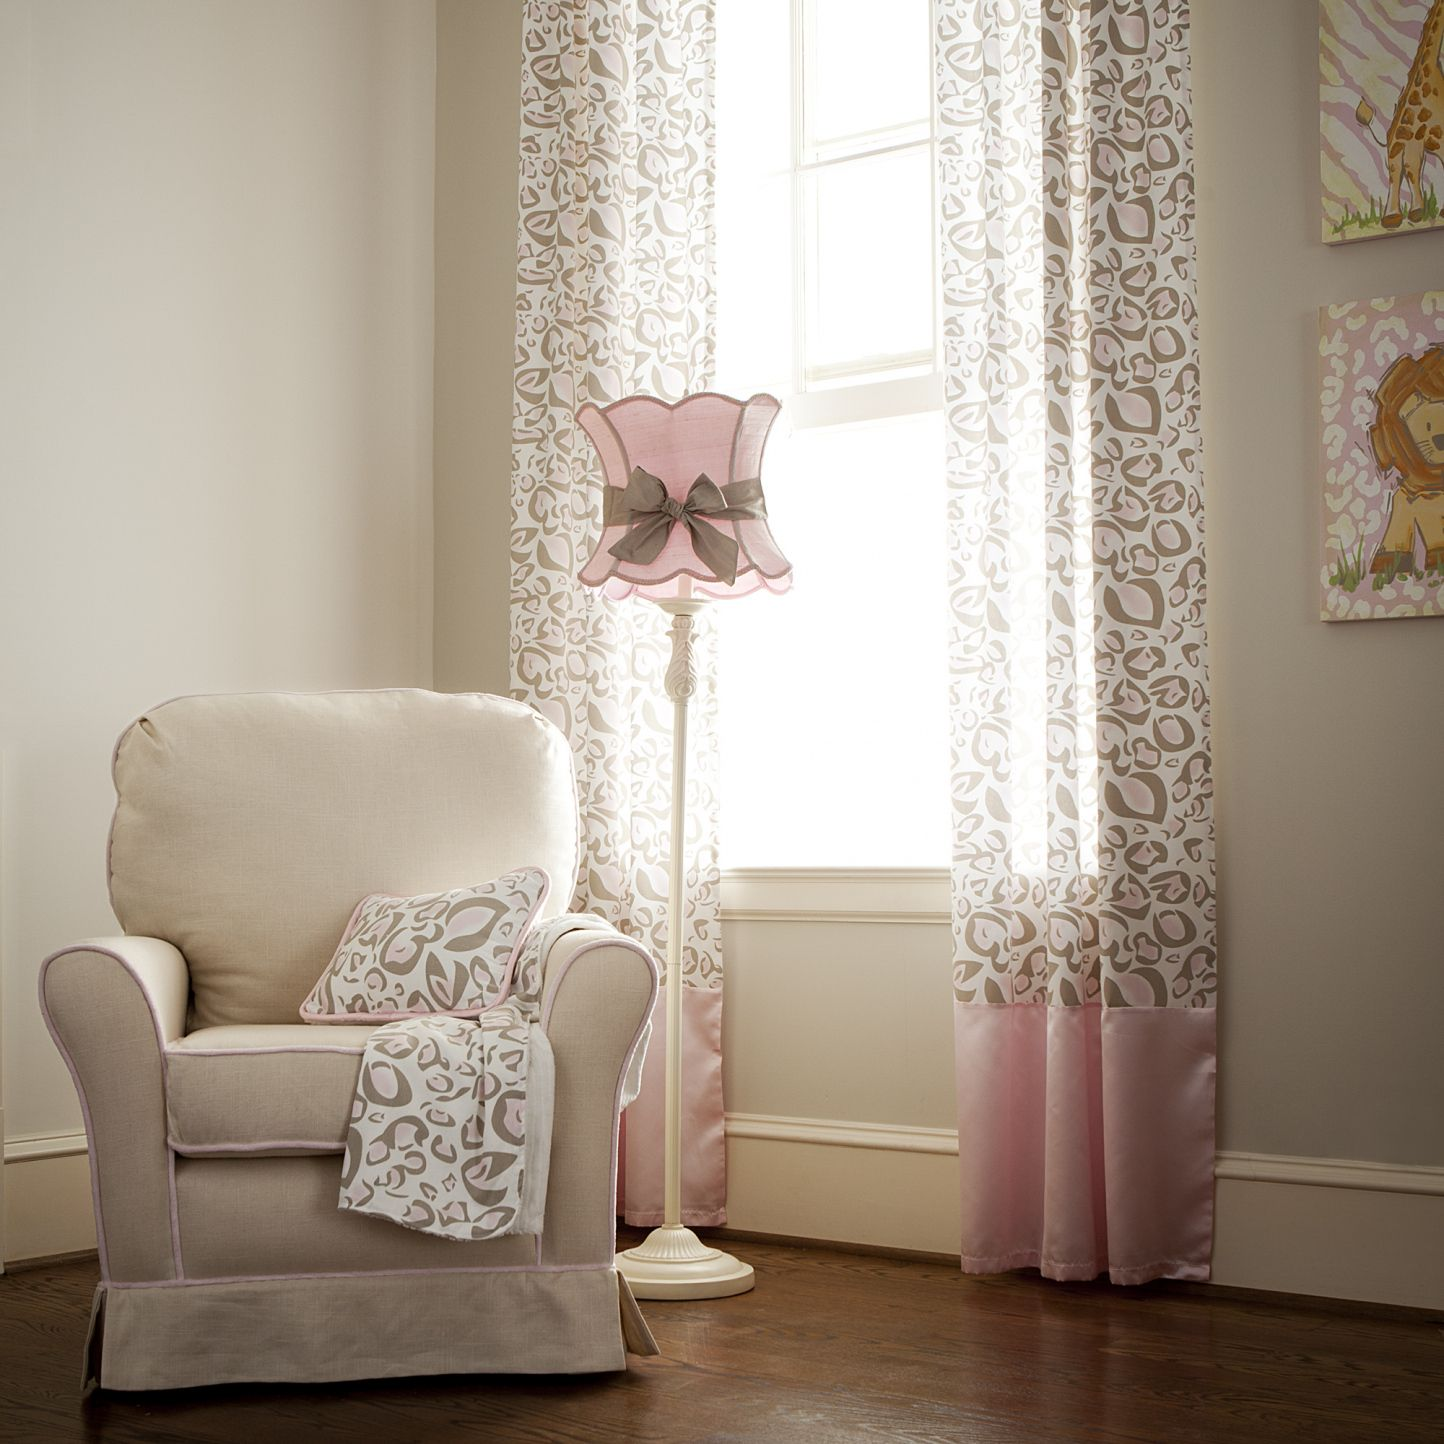 Floor Lamps For Baby Room Interior House Paint Ideas Check More At Http